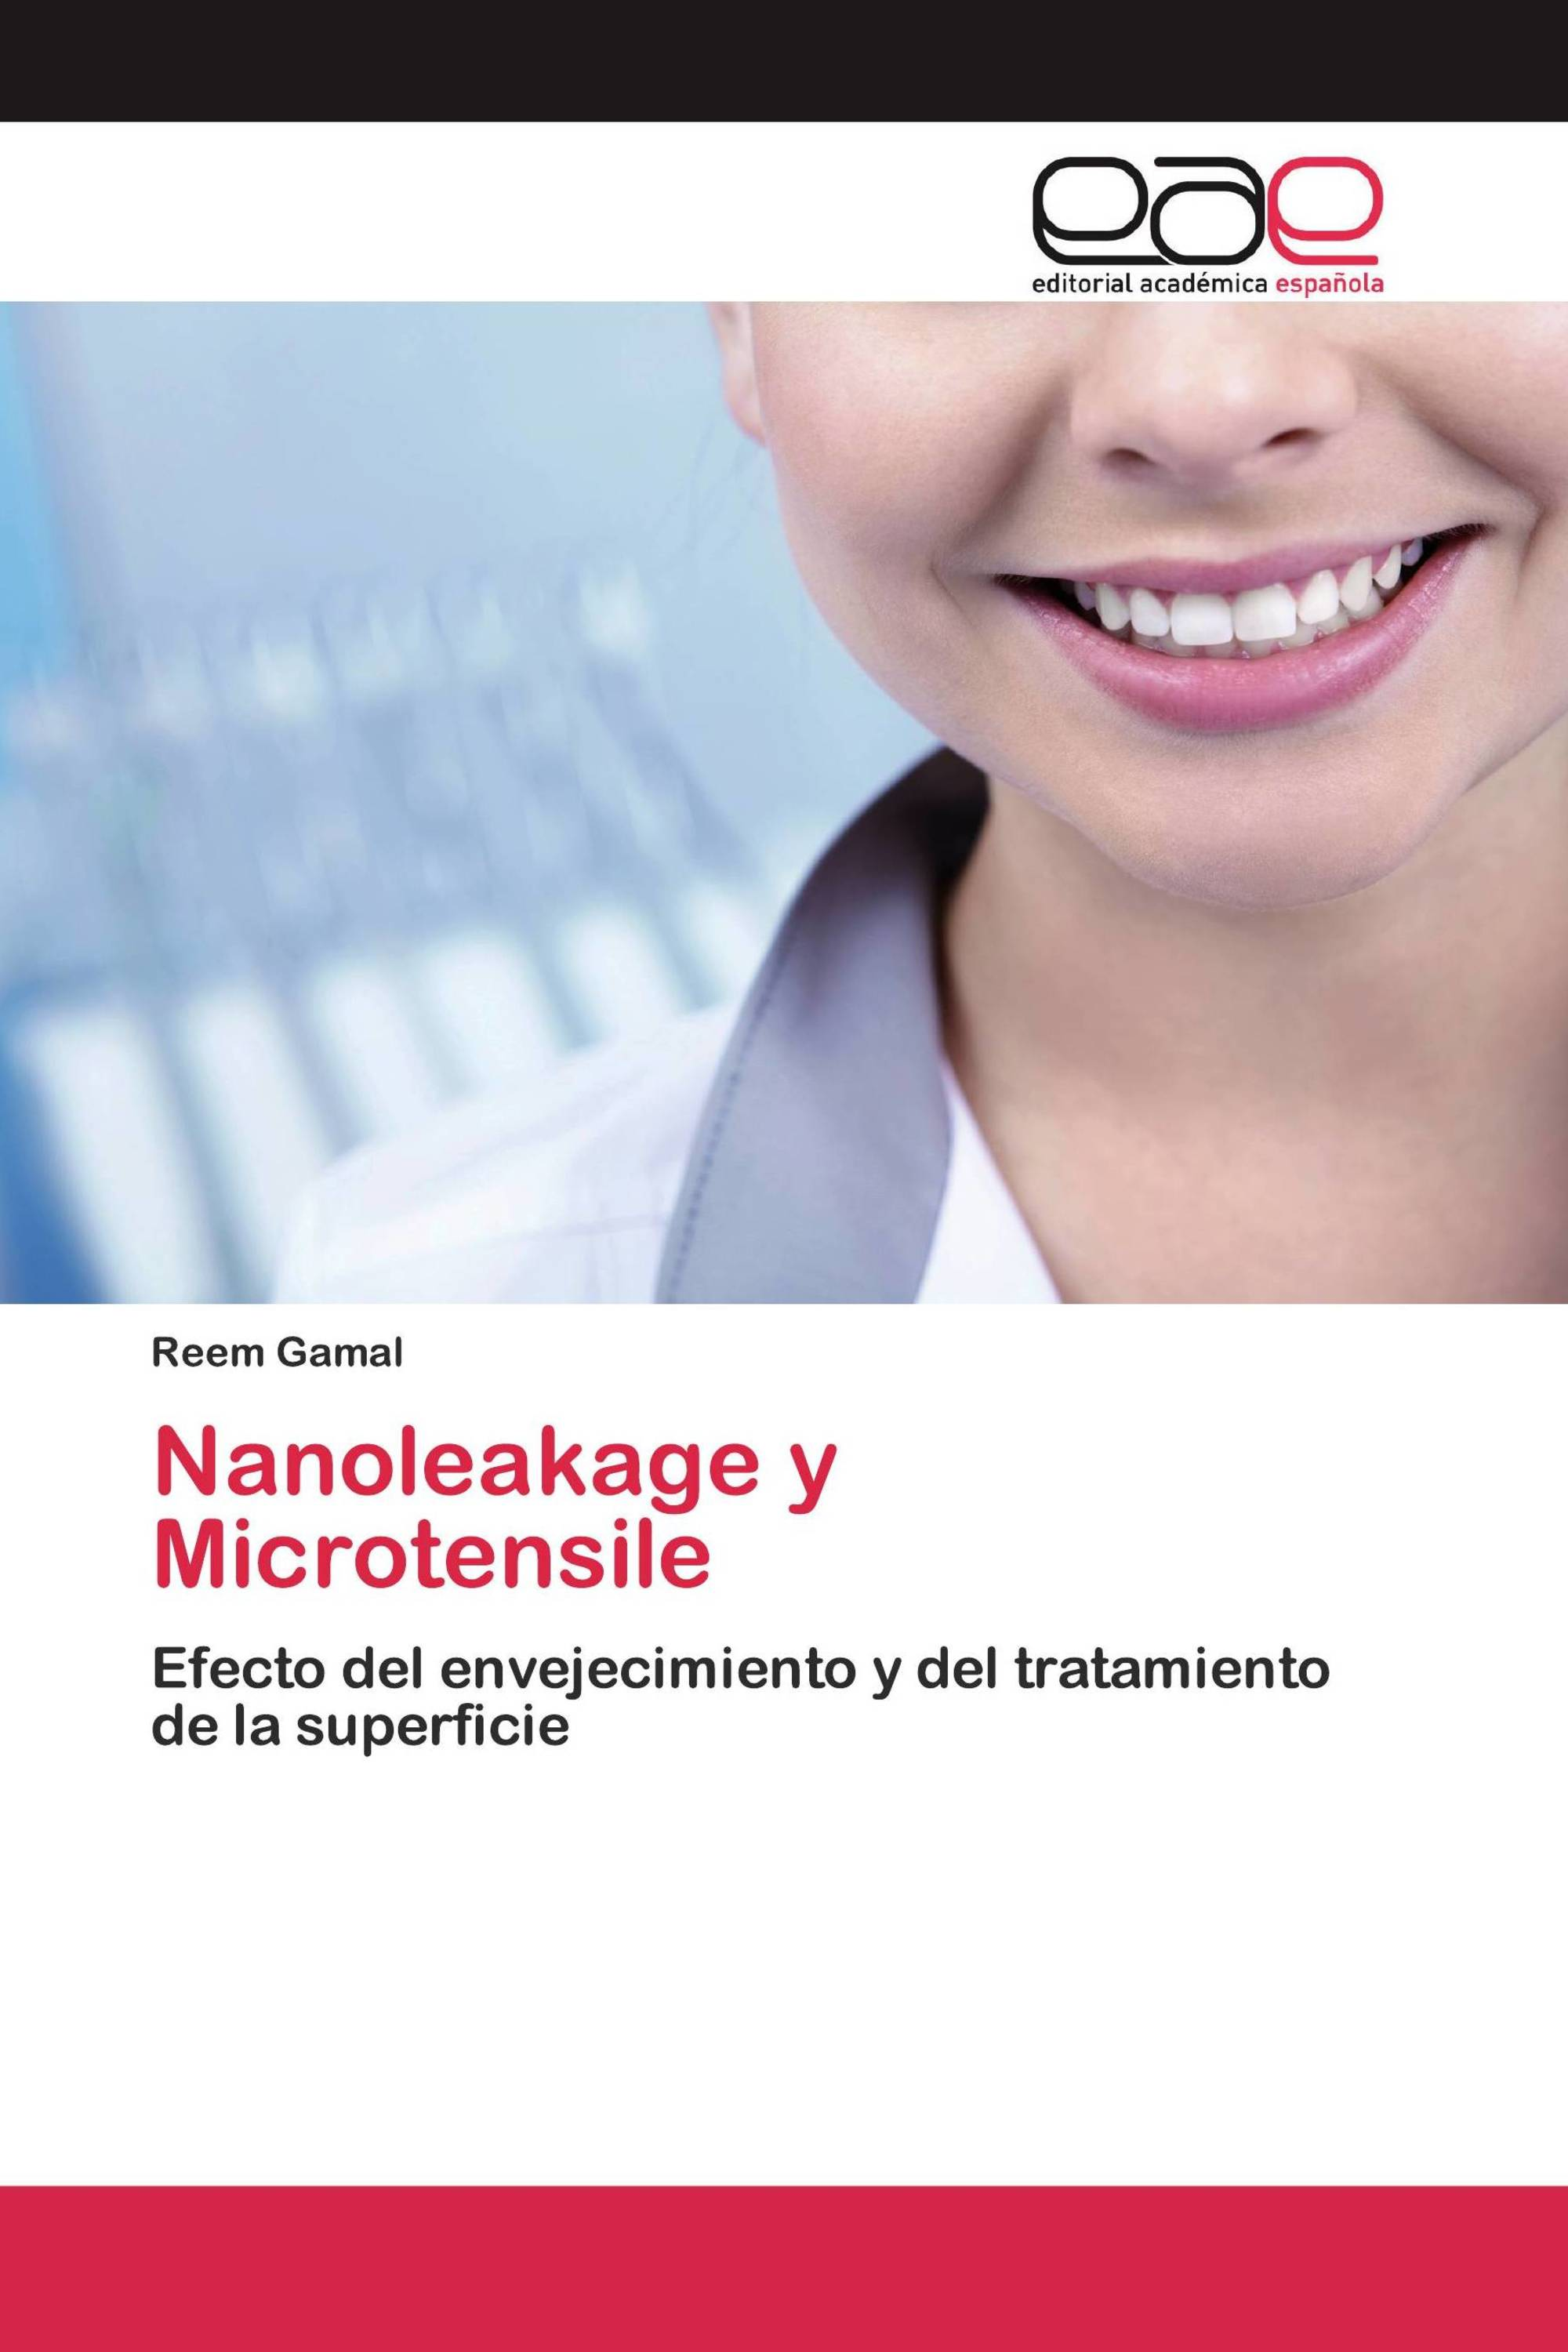 Nanoleakage y Microtensile